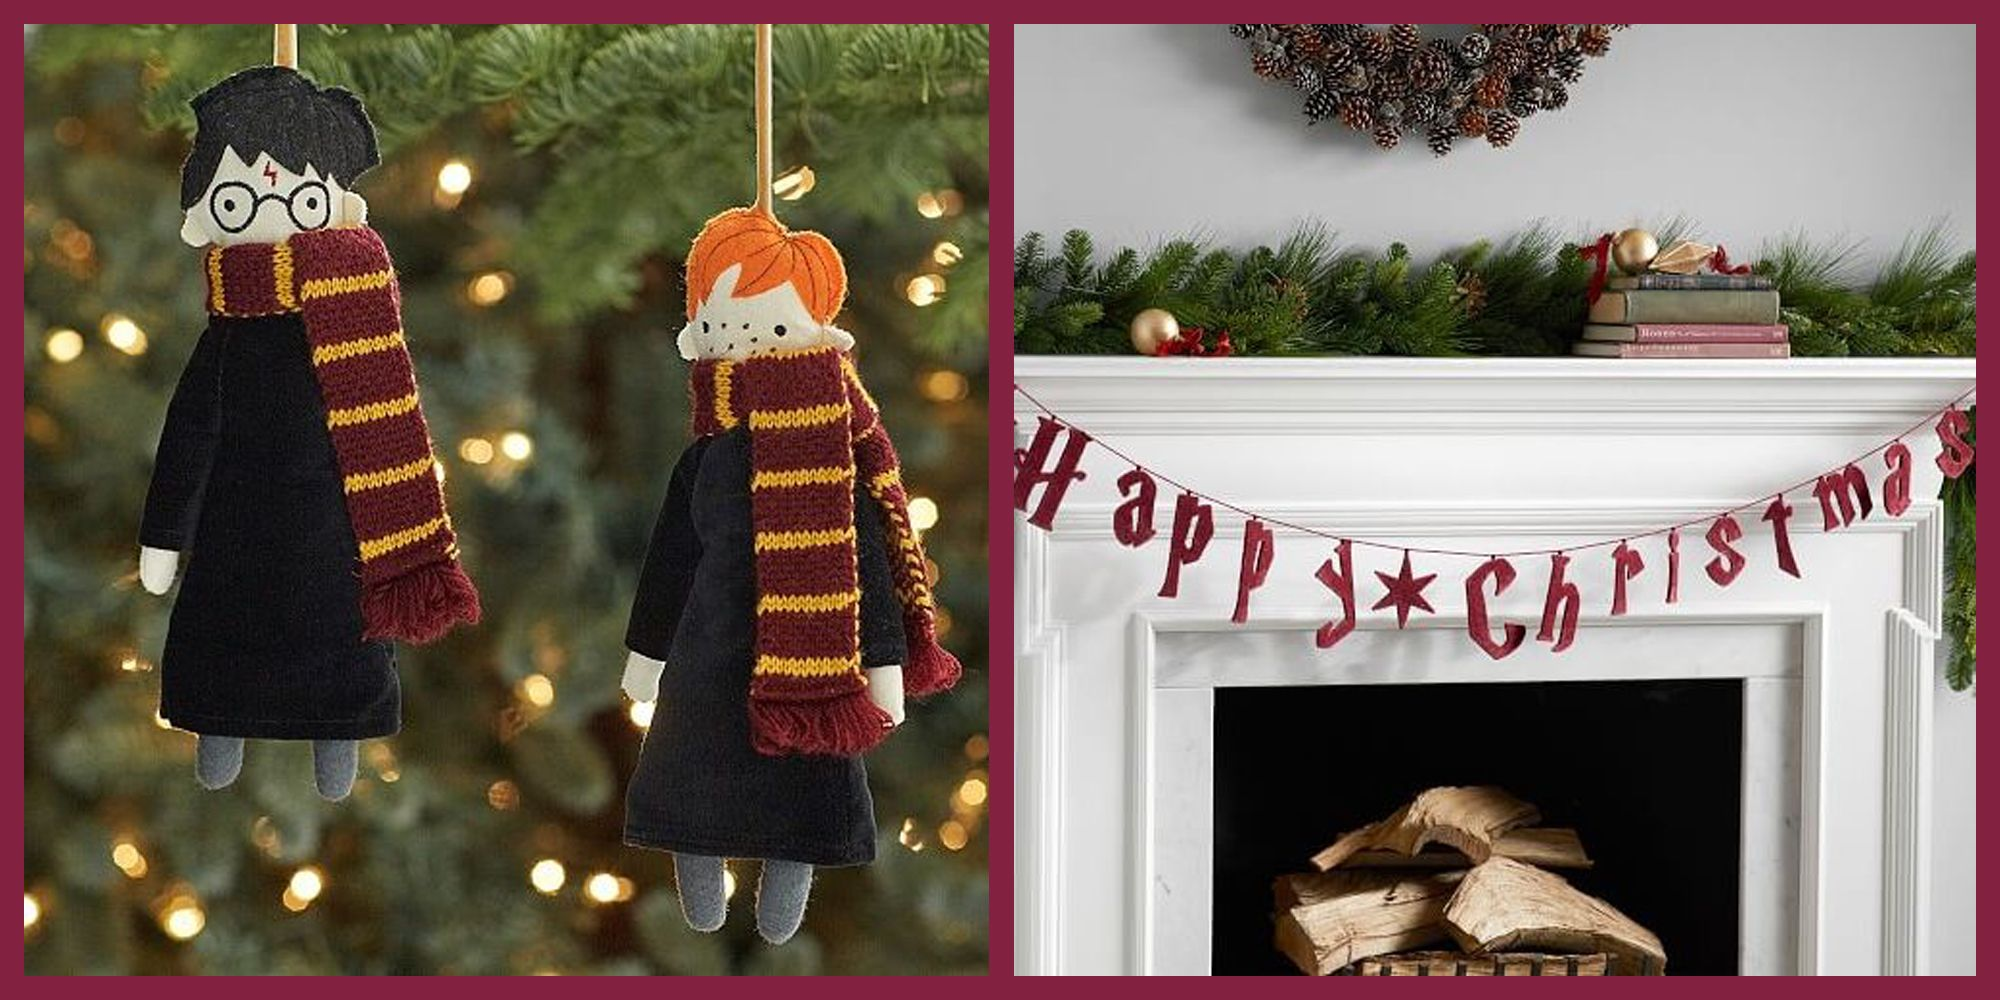 A Harry Potter Holiday Collection Was Just Released by Pottery Barn